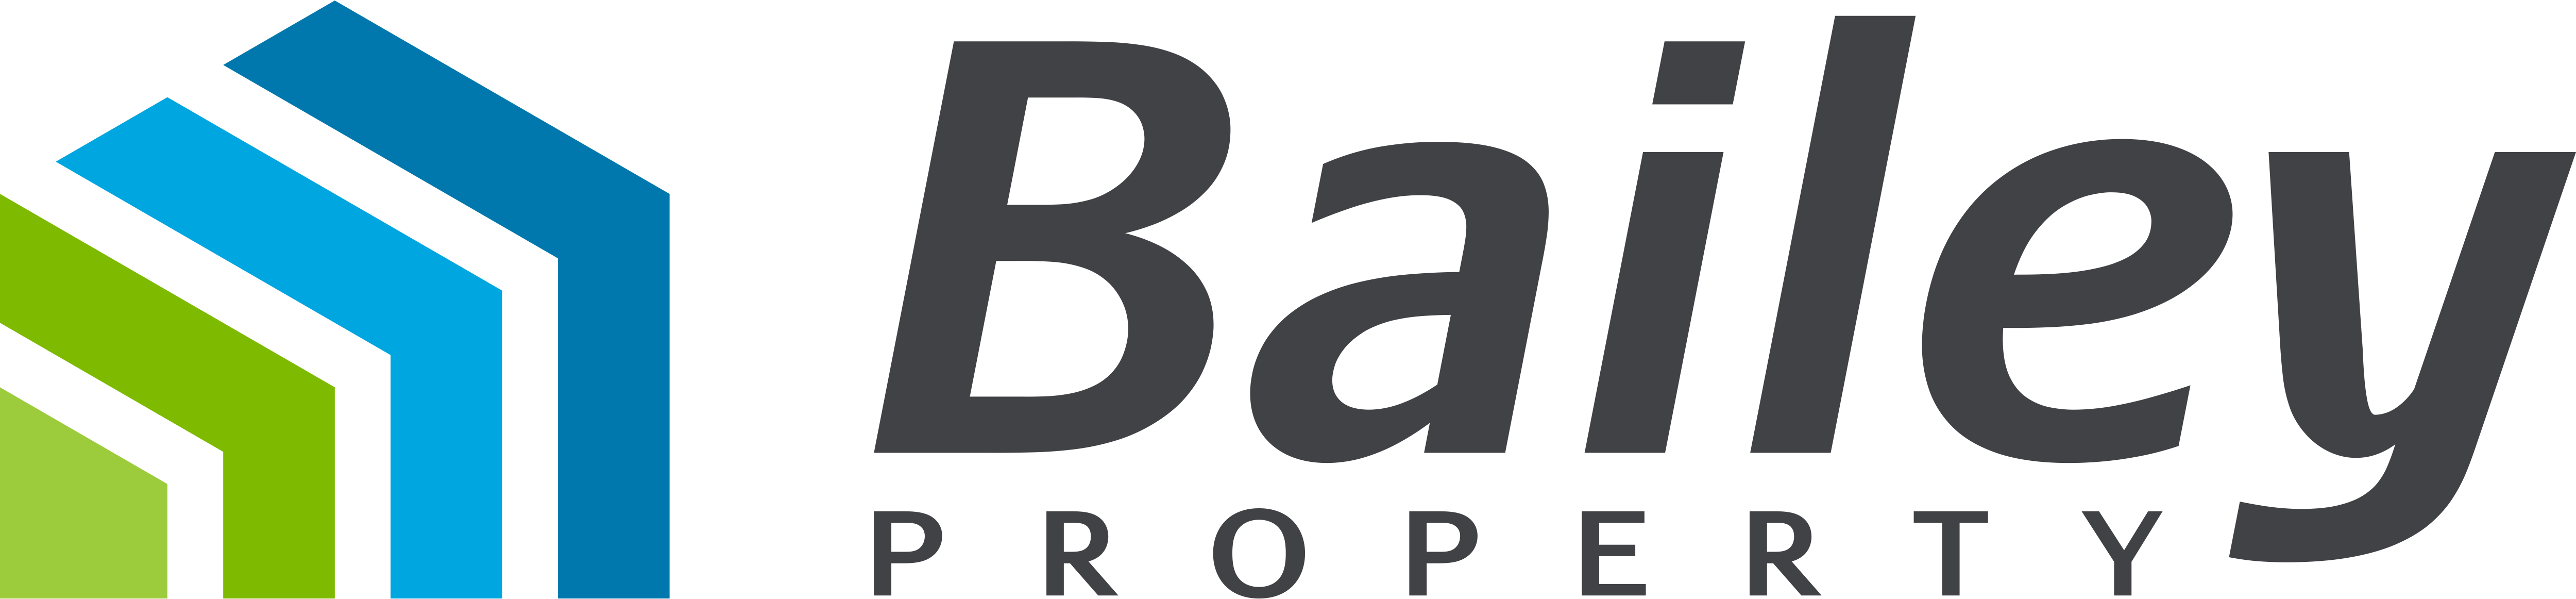 Bailey Property Group - logo